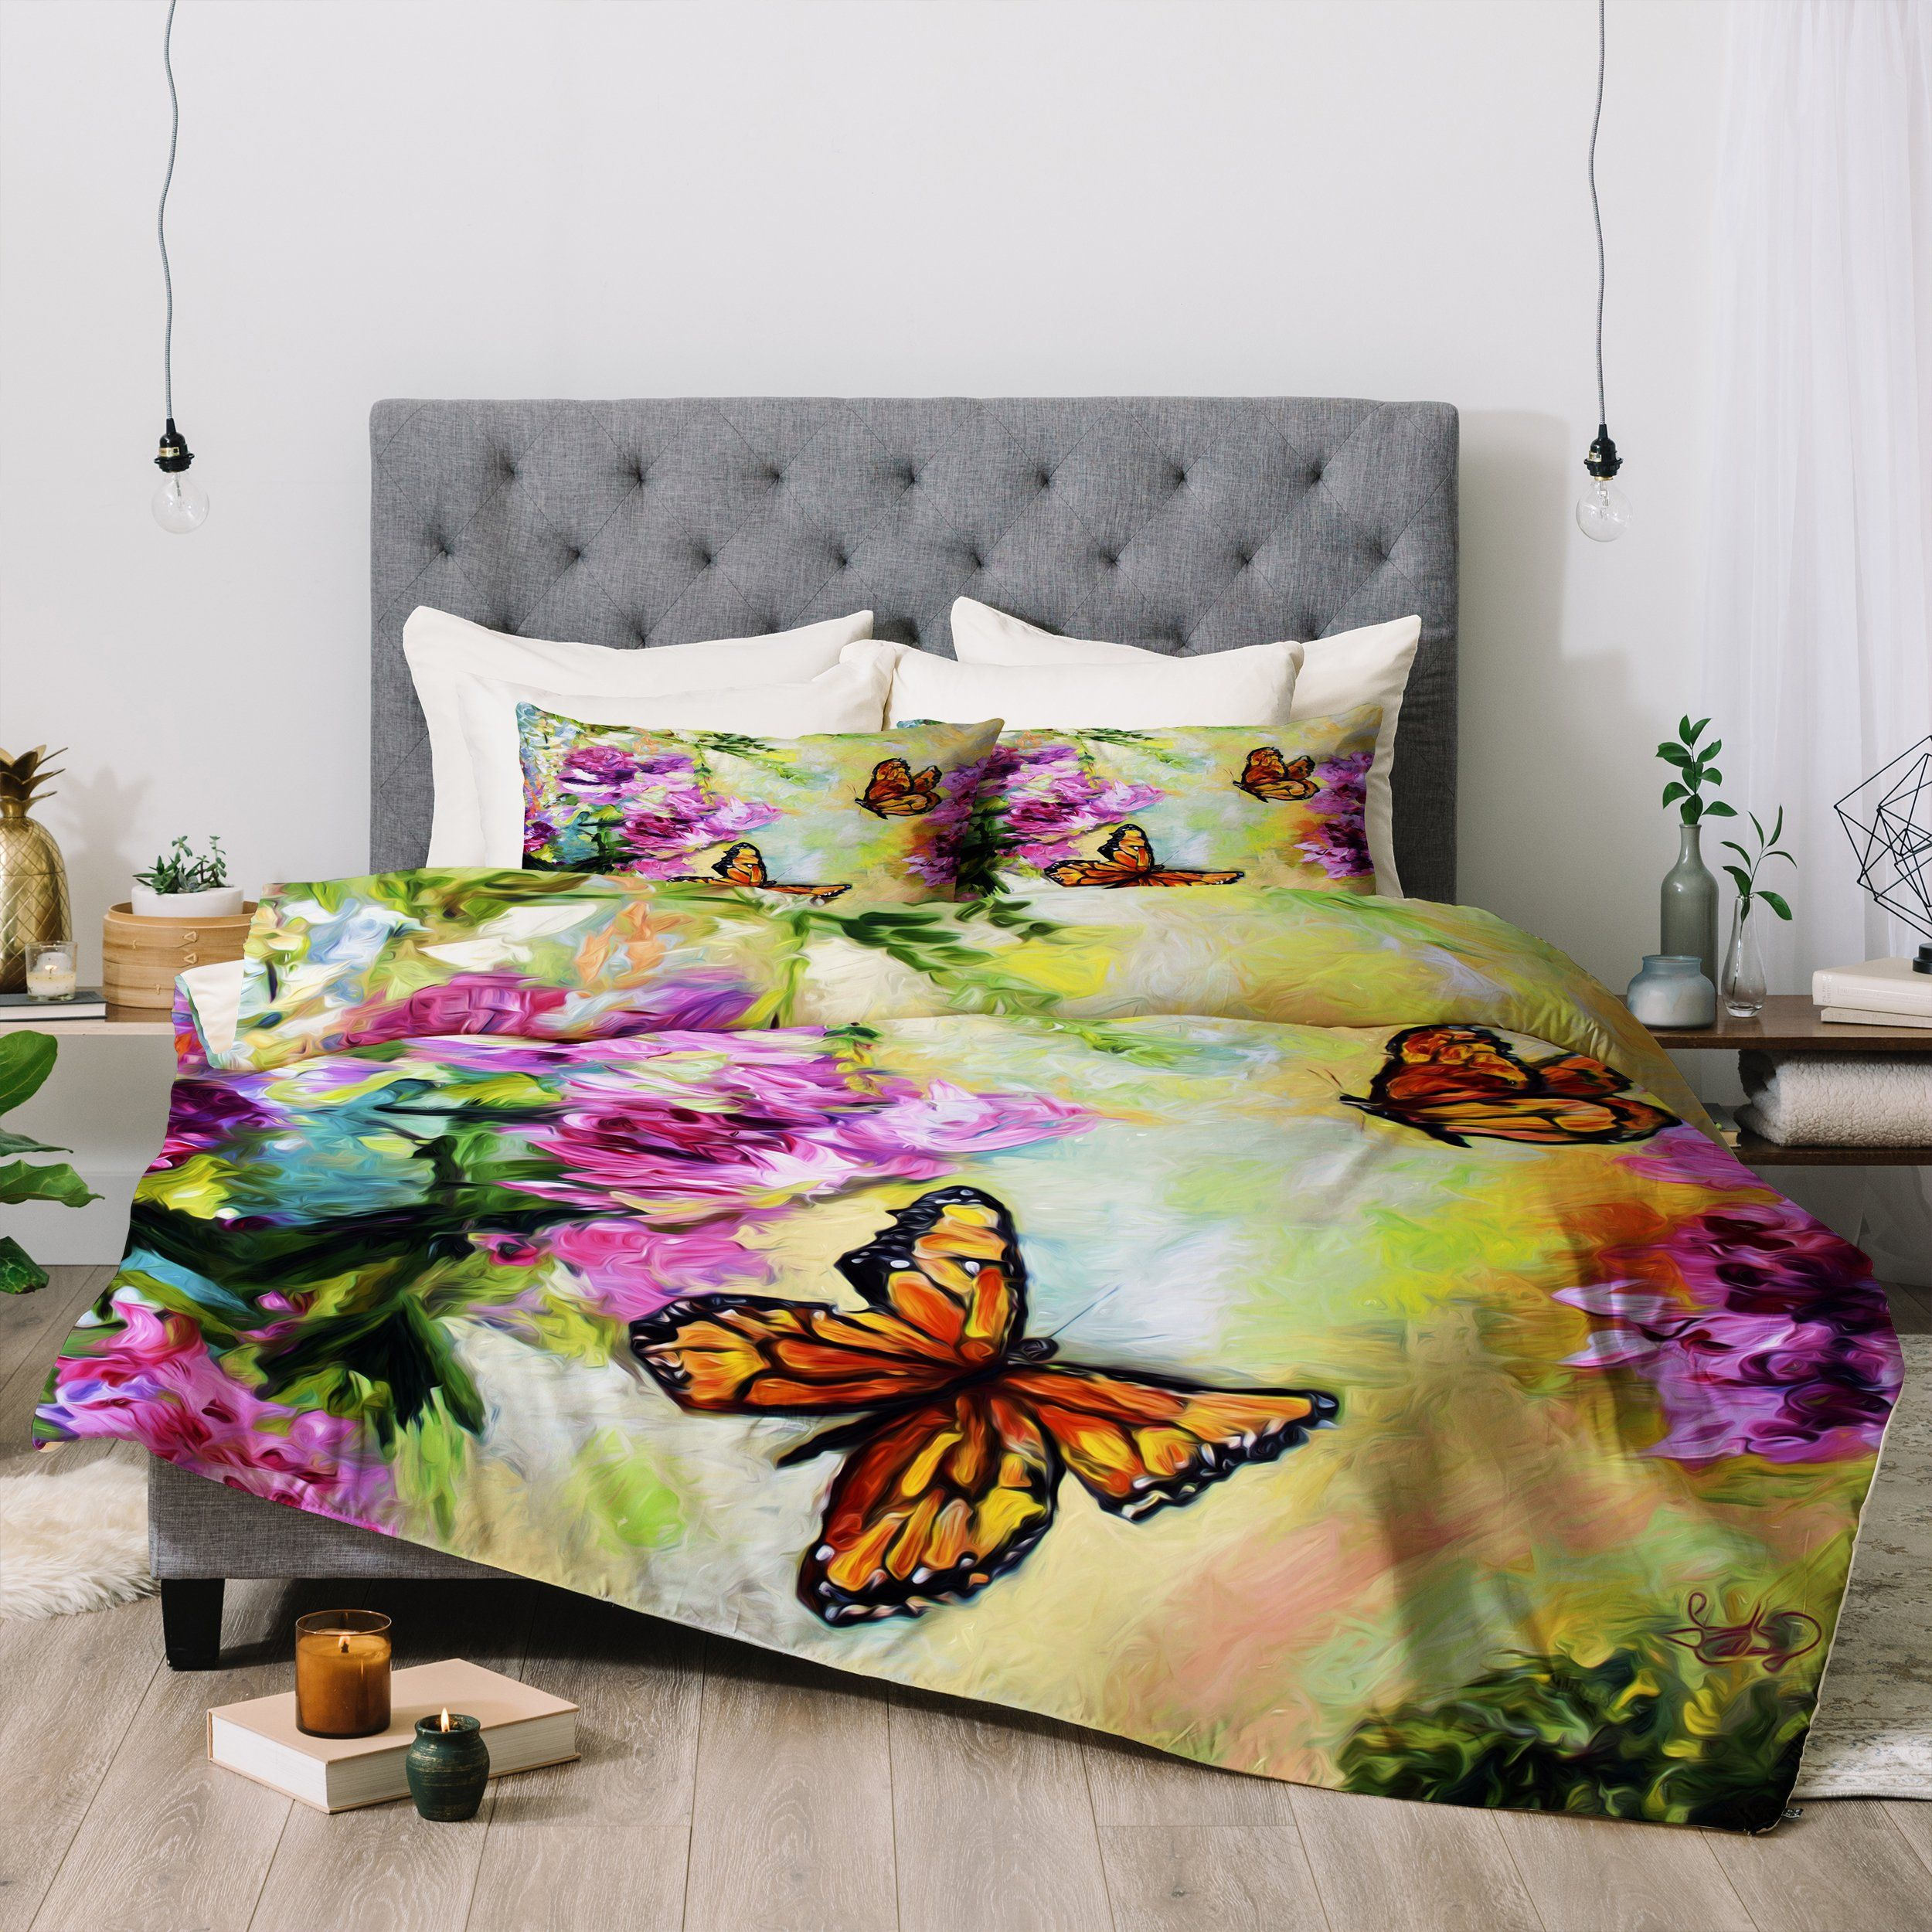 Butterflies And Peonies Comforter Ginette Fine Art Bedding Sets Bed Unique Bedding Sets